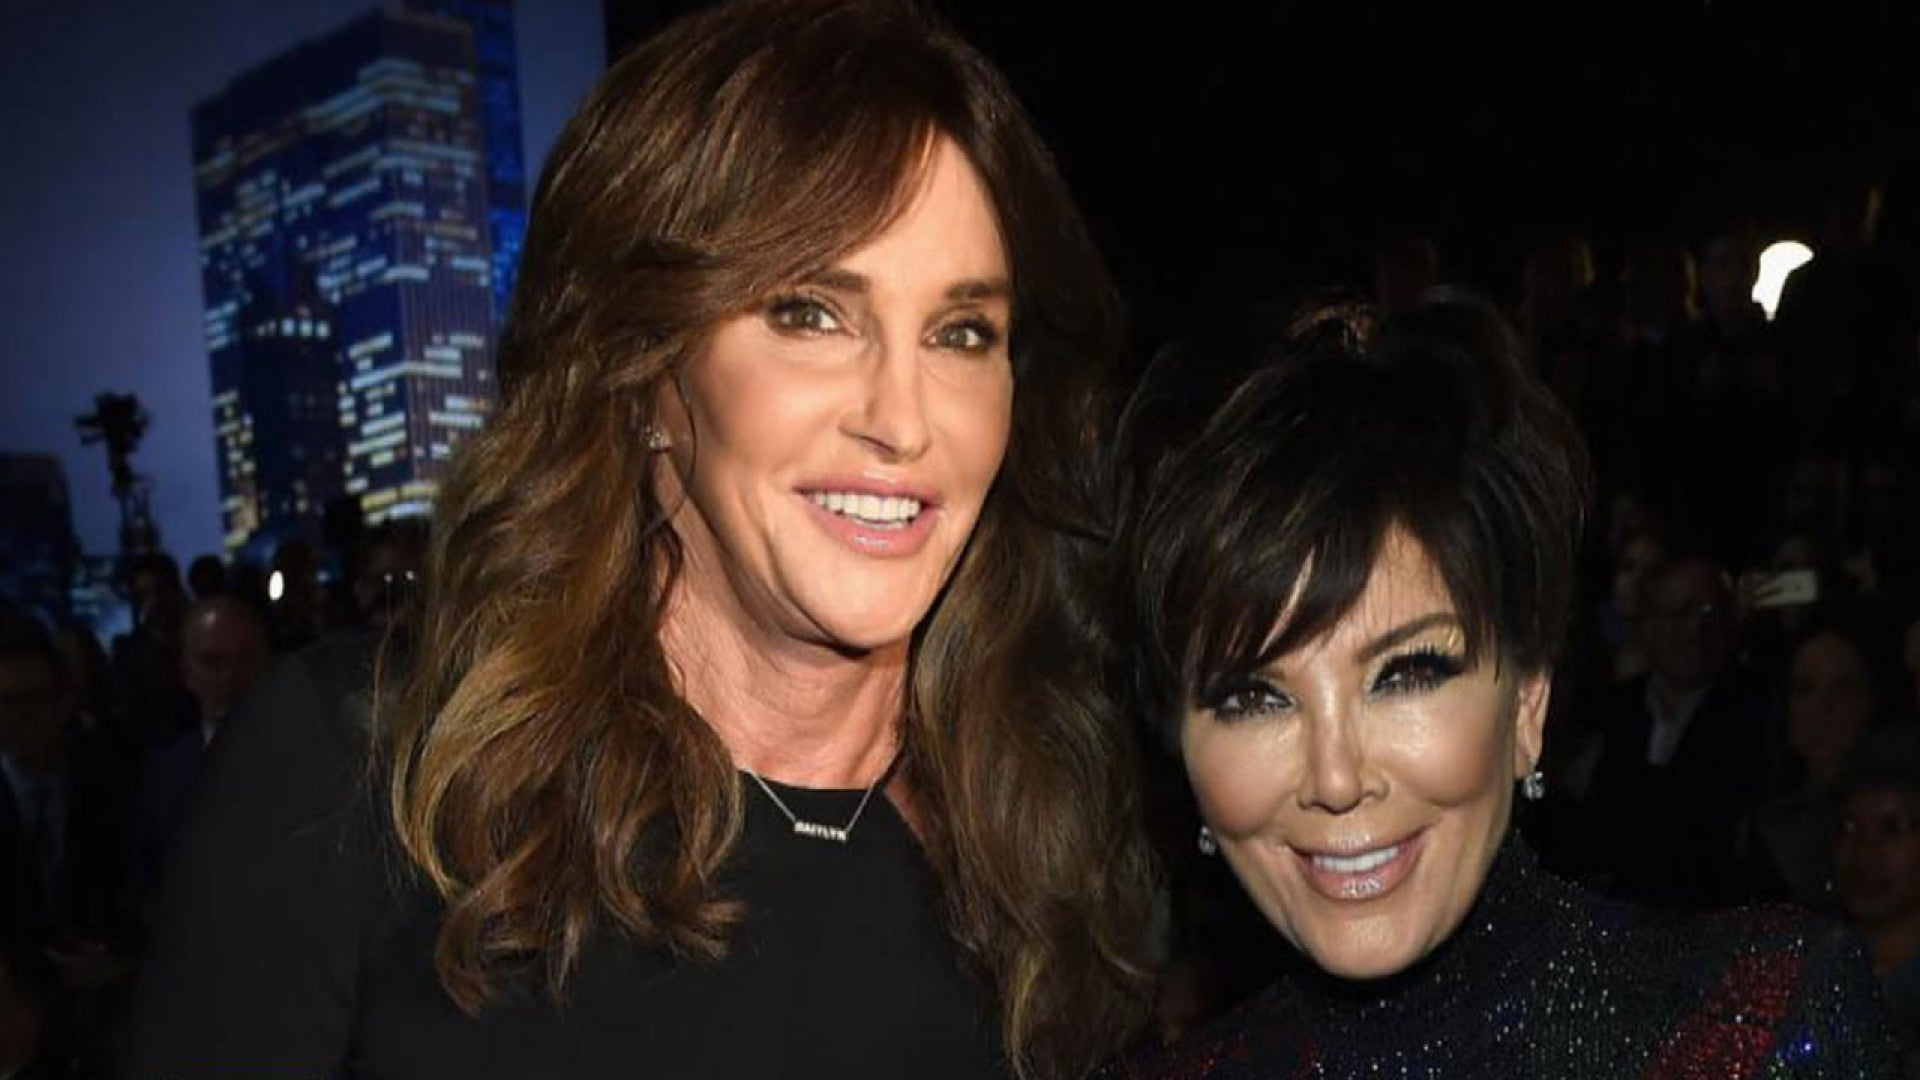 Caitlyn Jenner talks about divorce with Kris Jenner